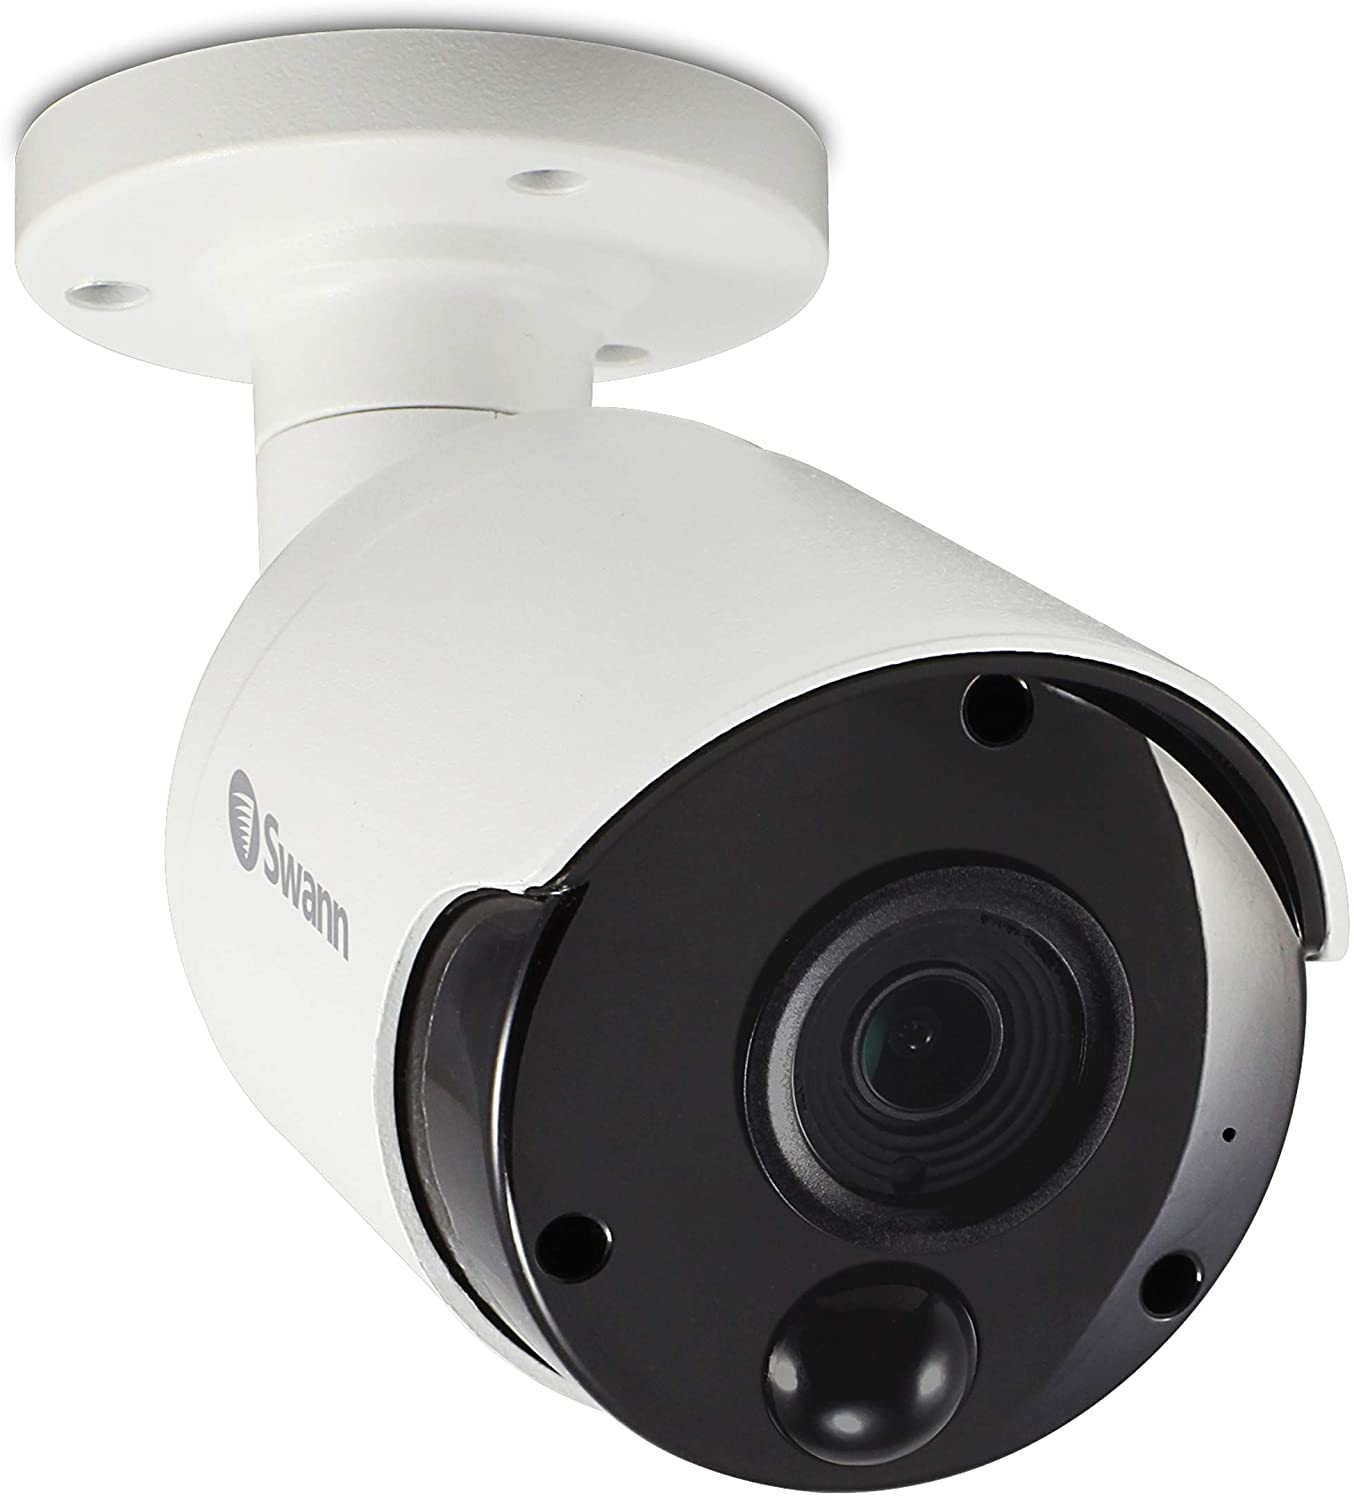 Swann Wired PIR Bullet Security Camera, 4K Ultra HD Surveillance Cam with Color Night Vision, Indoor/Outdoor, Thermal, Heat & Motion Sensing, Audio Monitoring, Add to NVR with PoE, SWNHD-887MSB